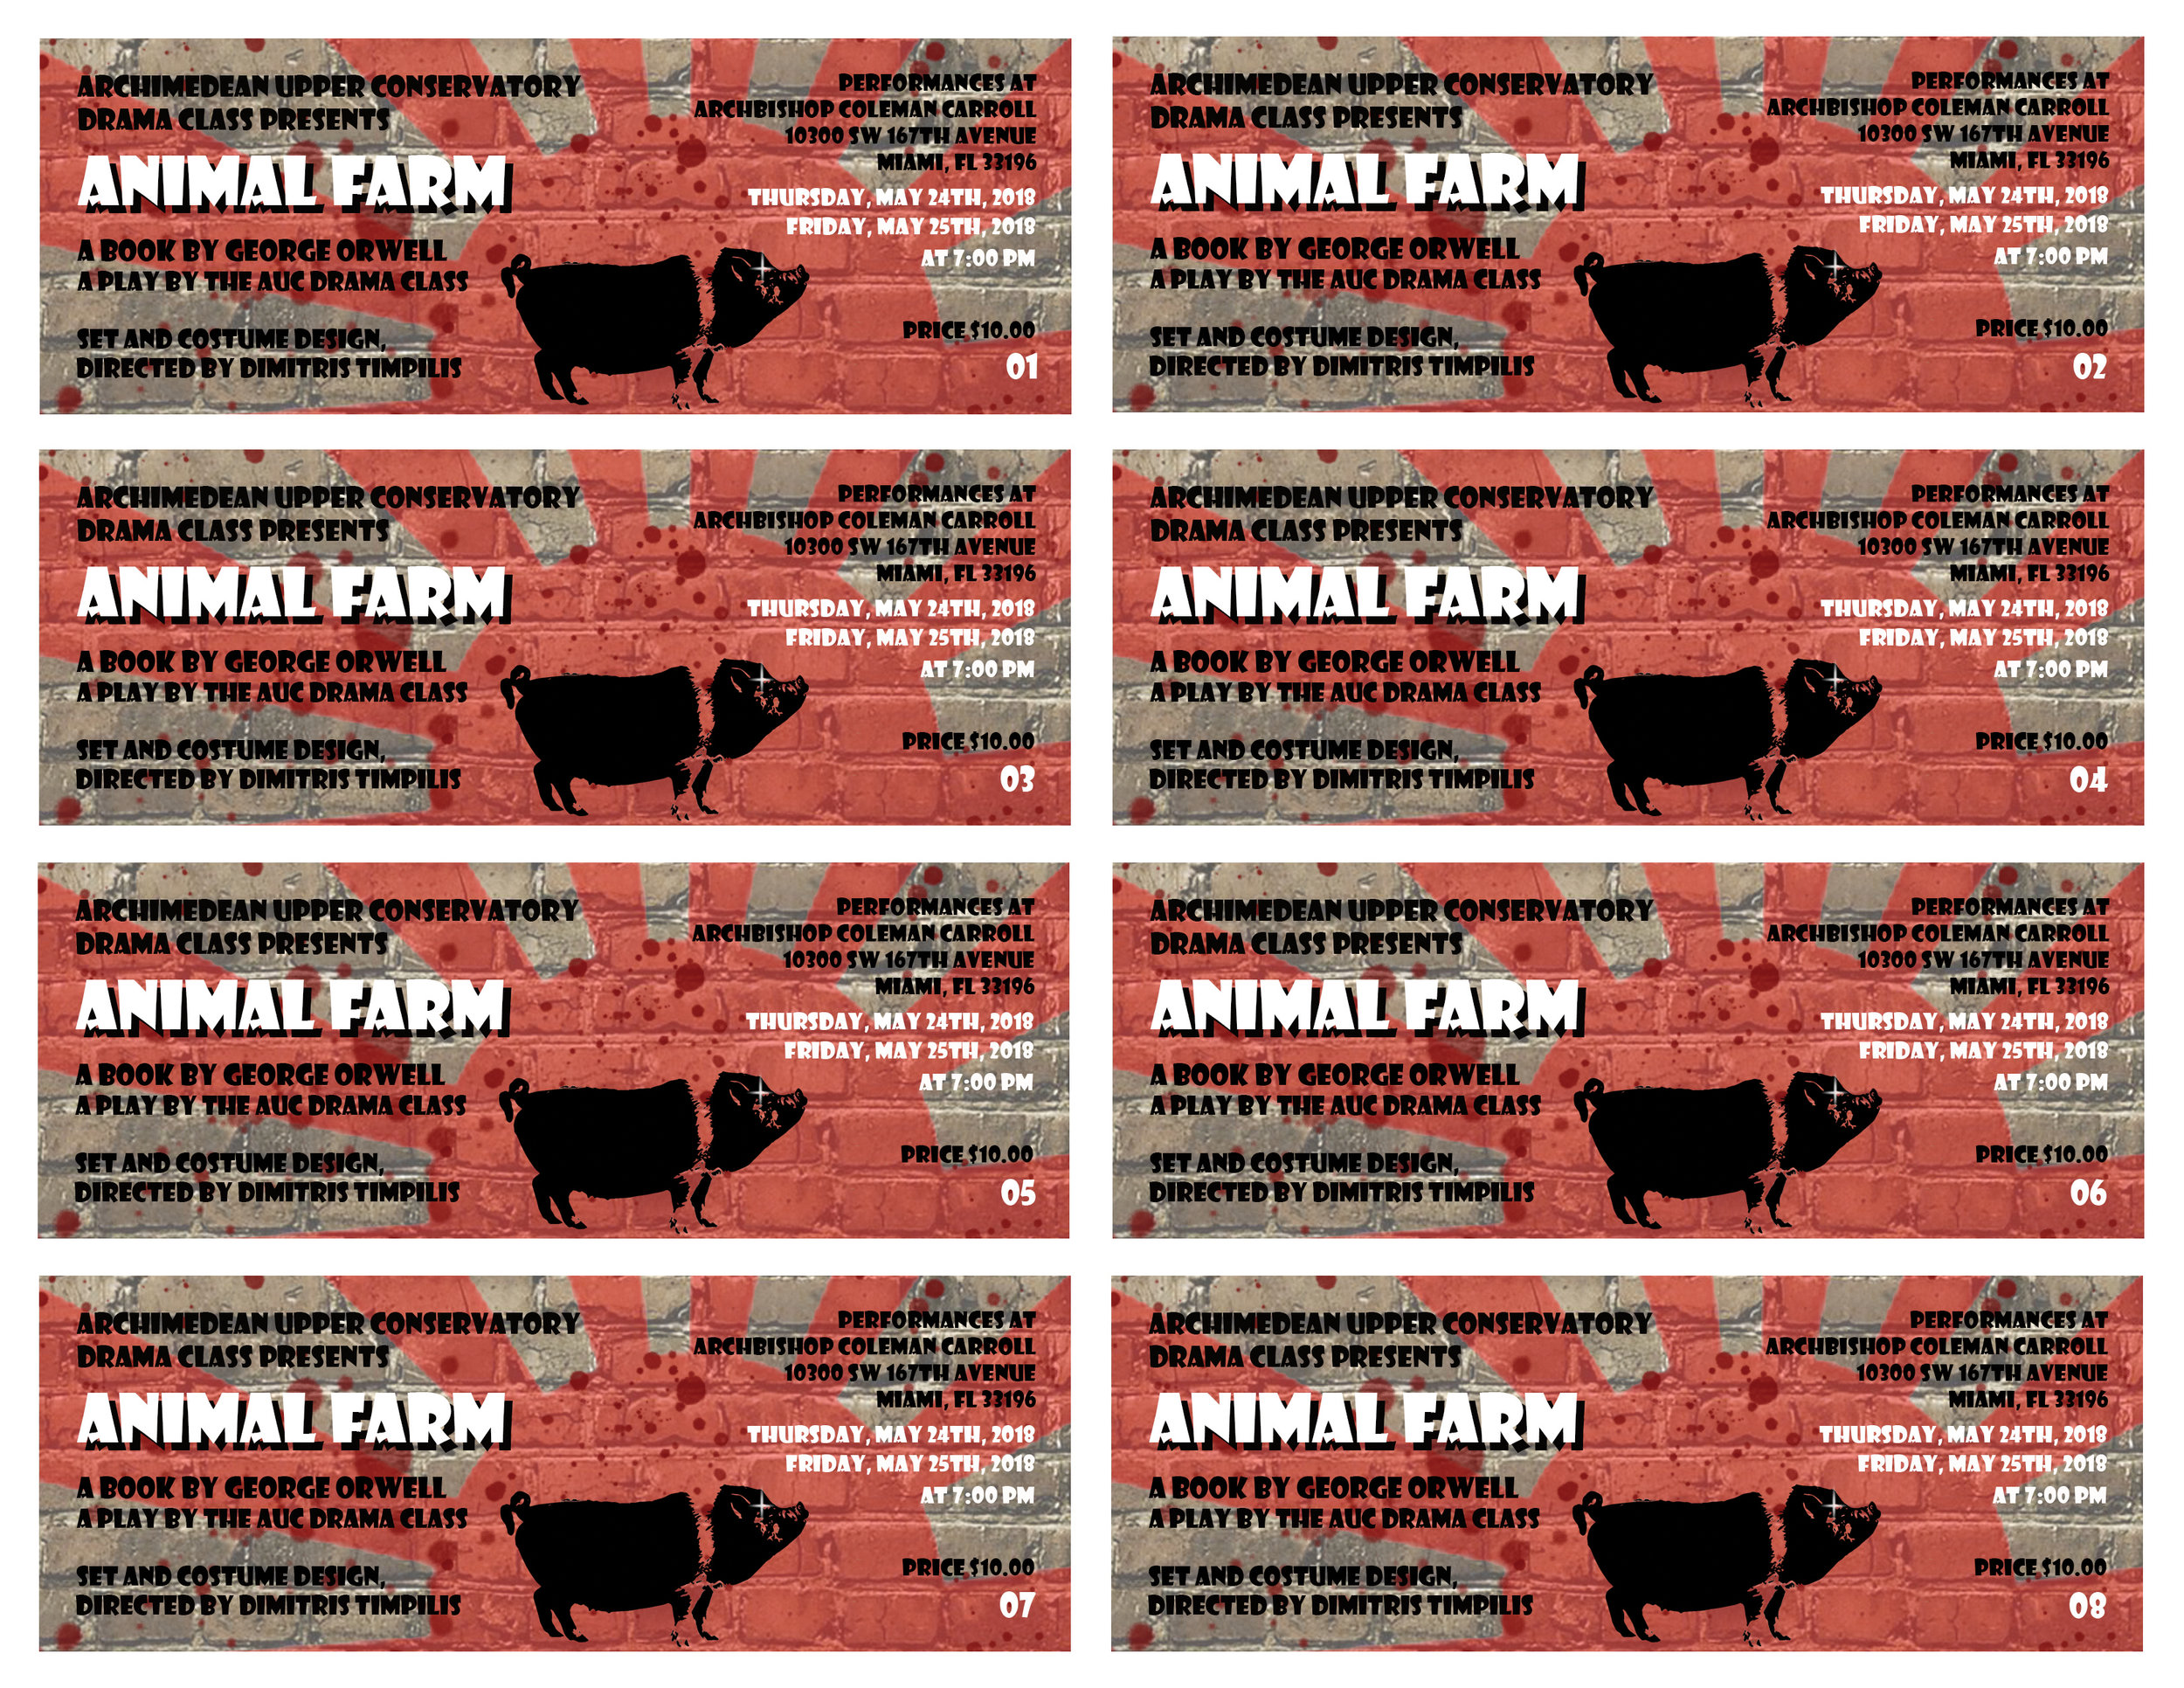 2018 Animal Farm adaptation of the same titled book by George Orwell Tickets 1-8.jpg